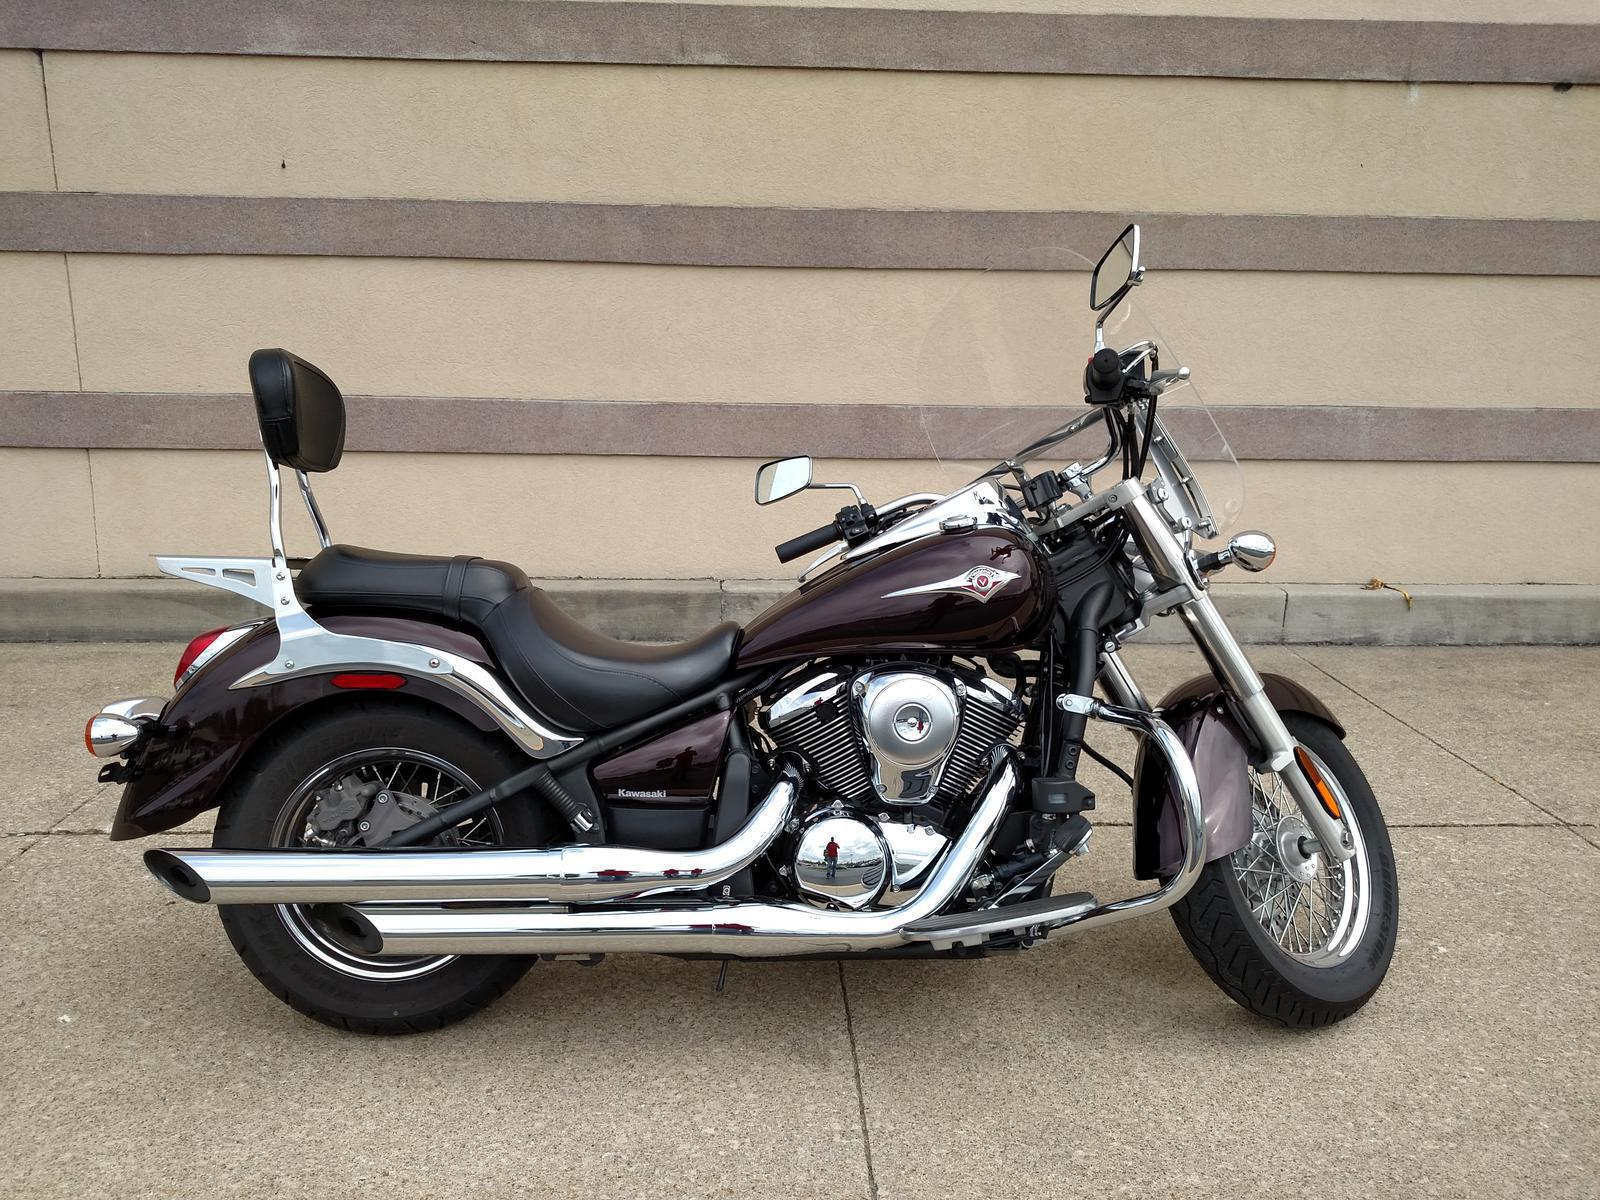 2012 Kawasaki VULCAN 900 CLASSIC for sale in Mansfield, OH. Pony ...